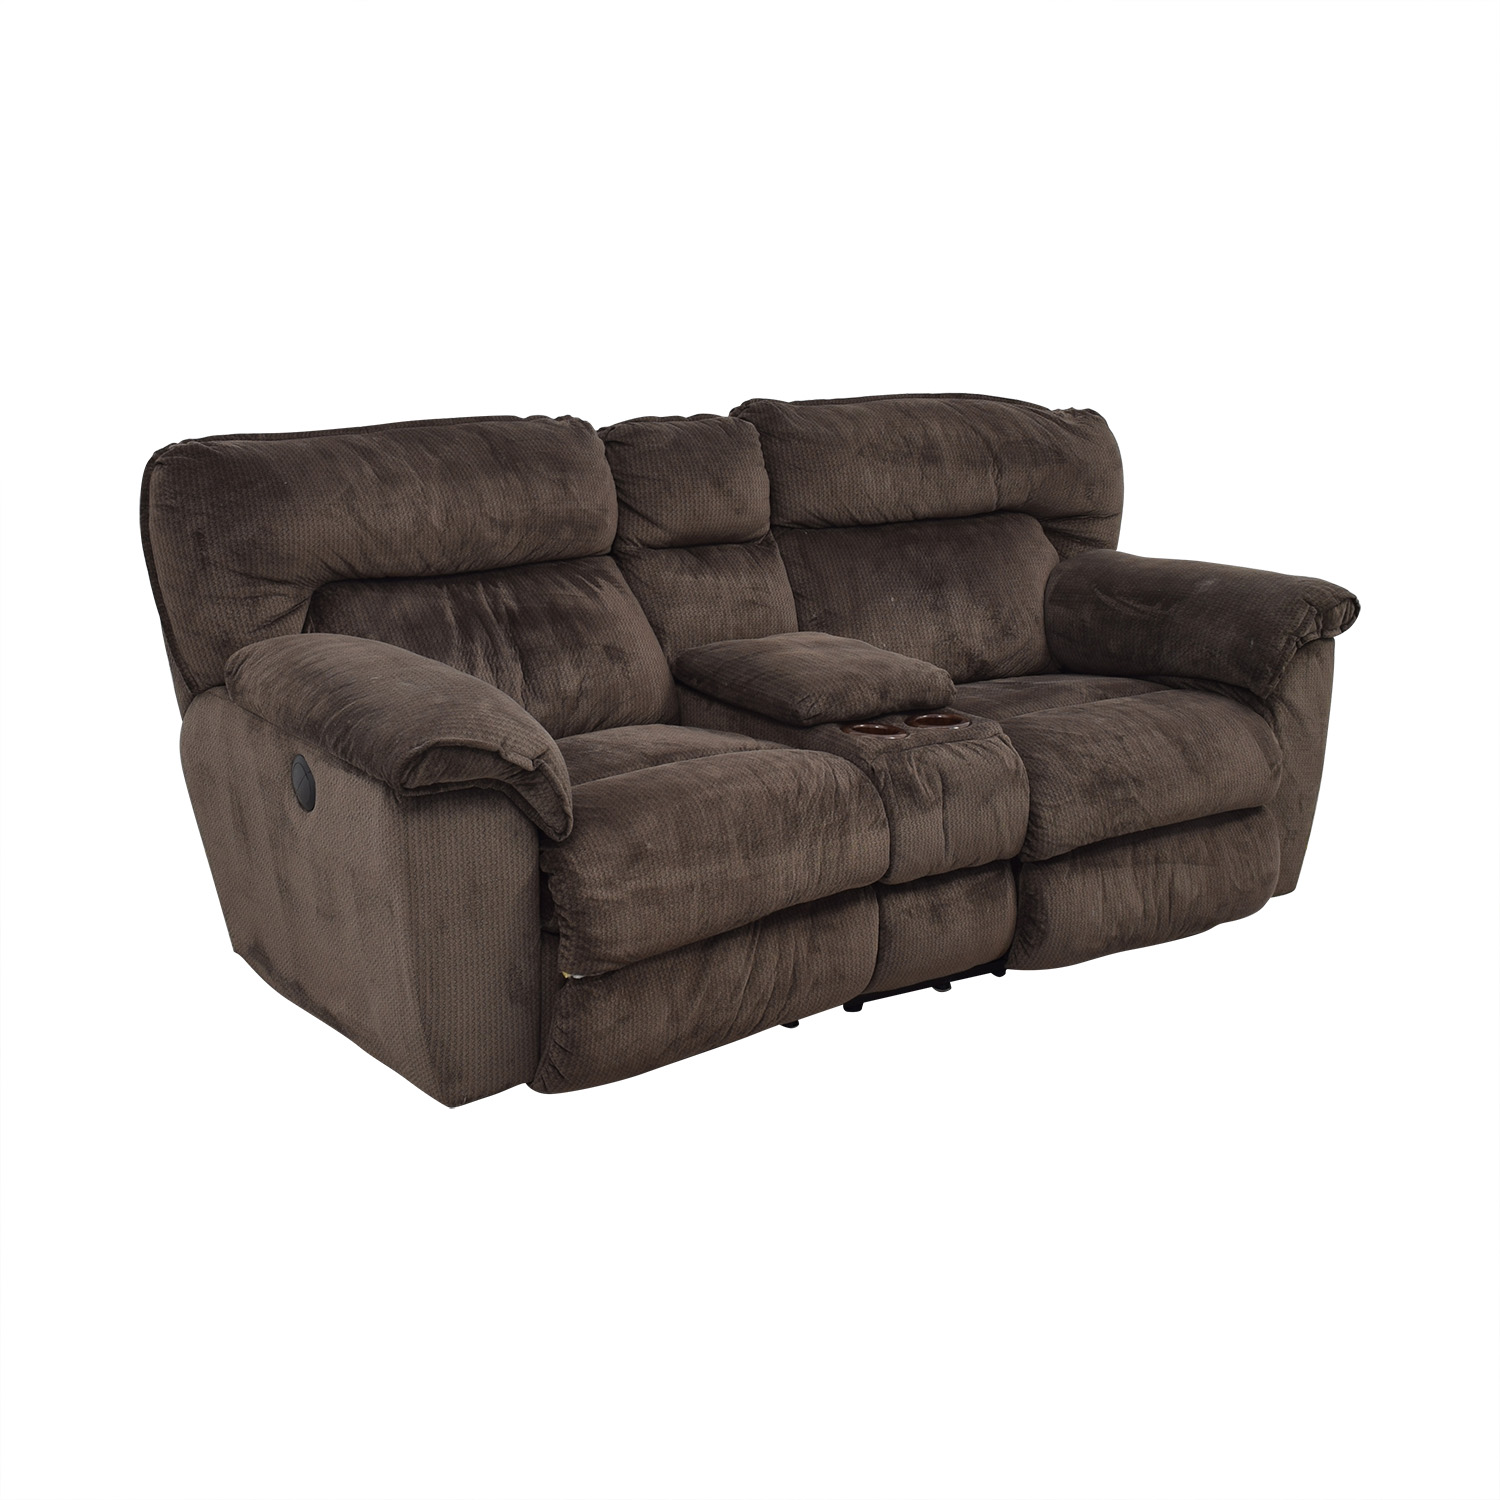 Two Seat Recliner Loveseat sale